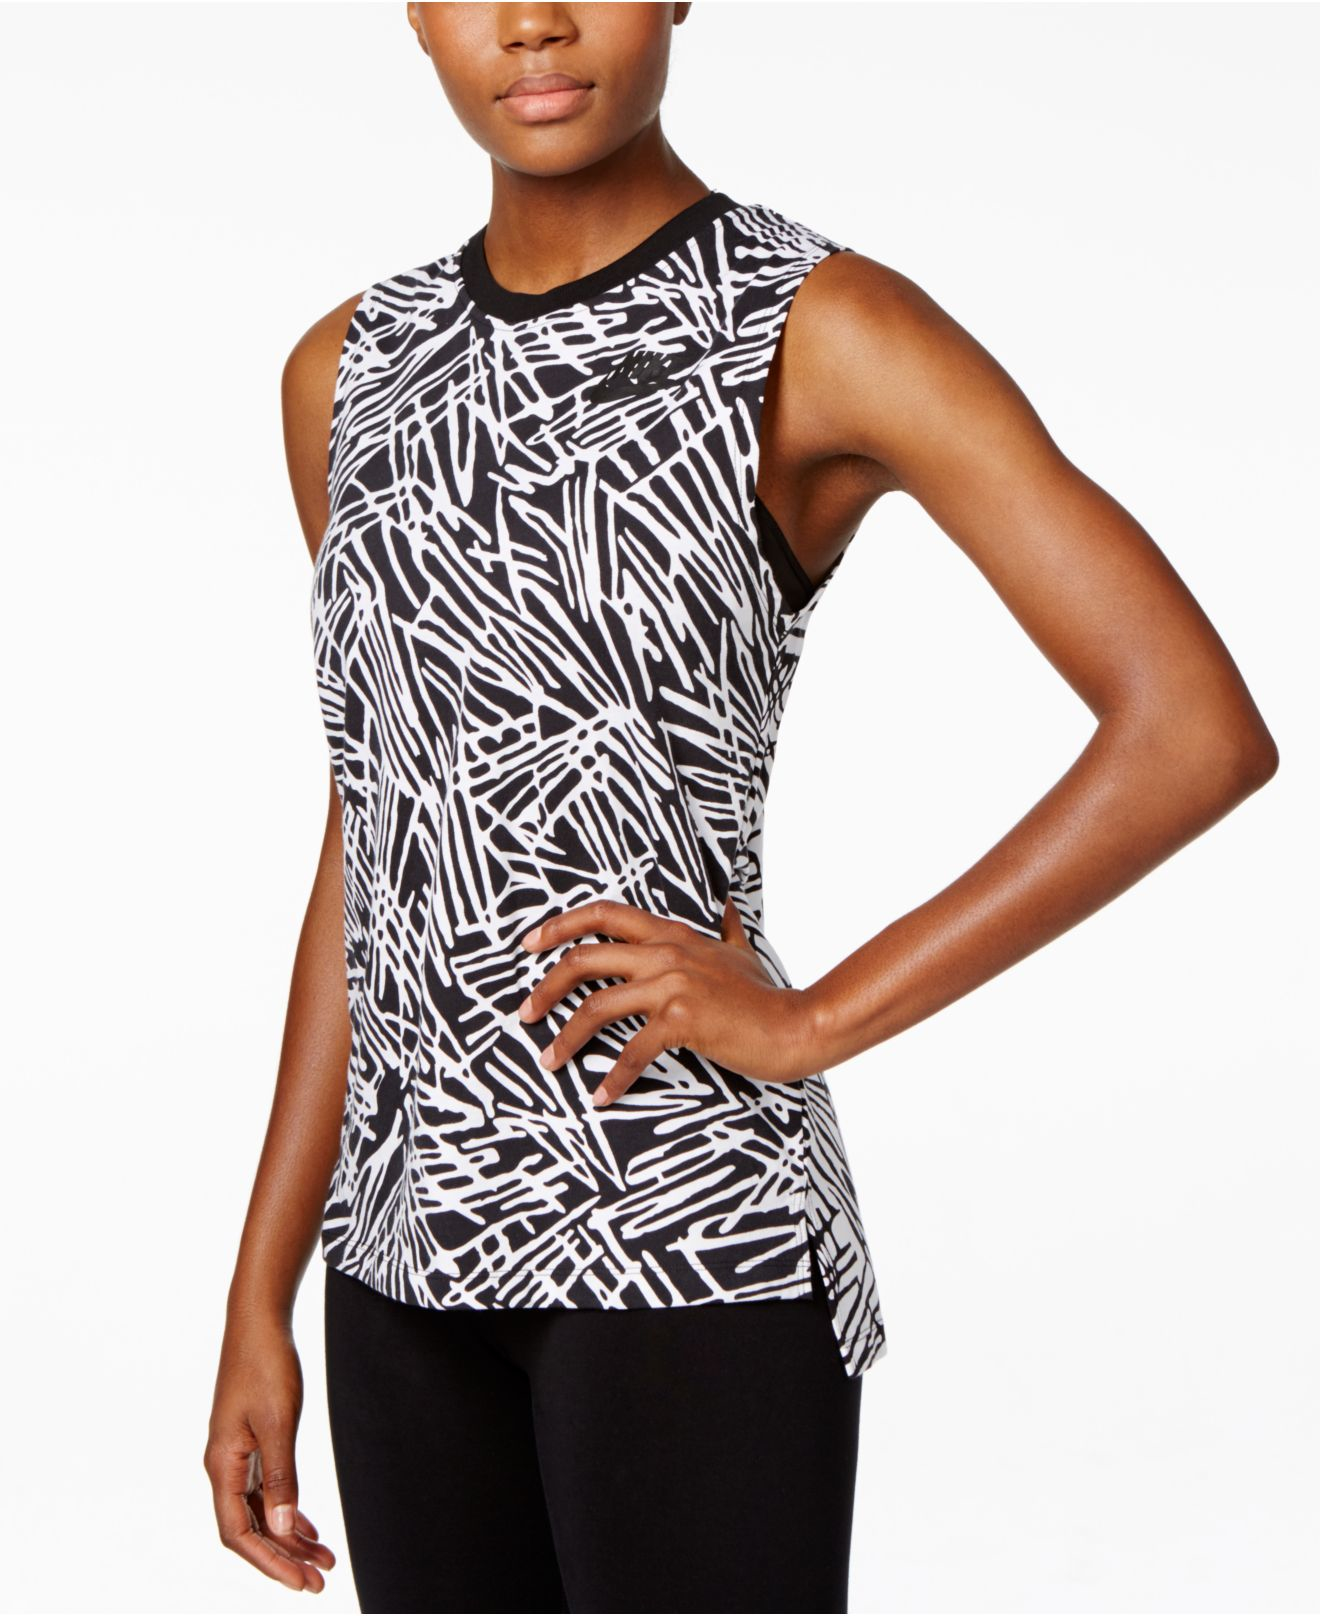 Nike Lyst In Top Muscle Palm Tank Black Print Signal zwqwd7Z